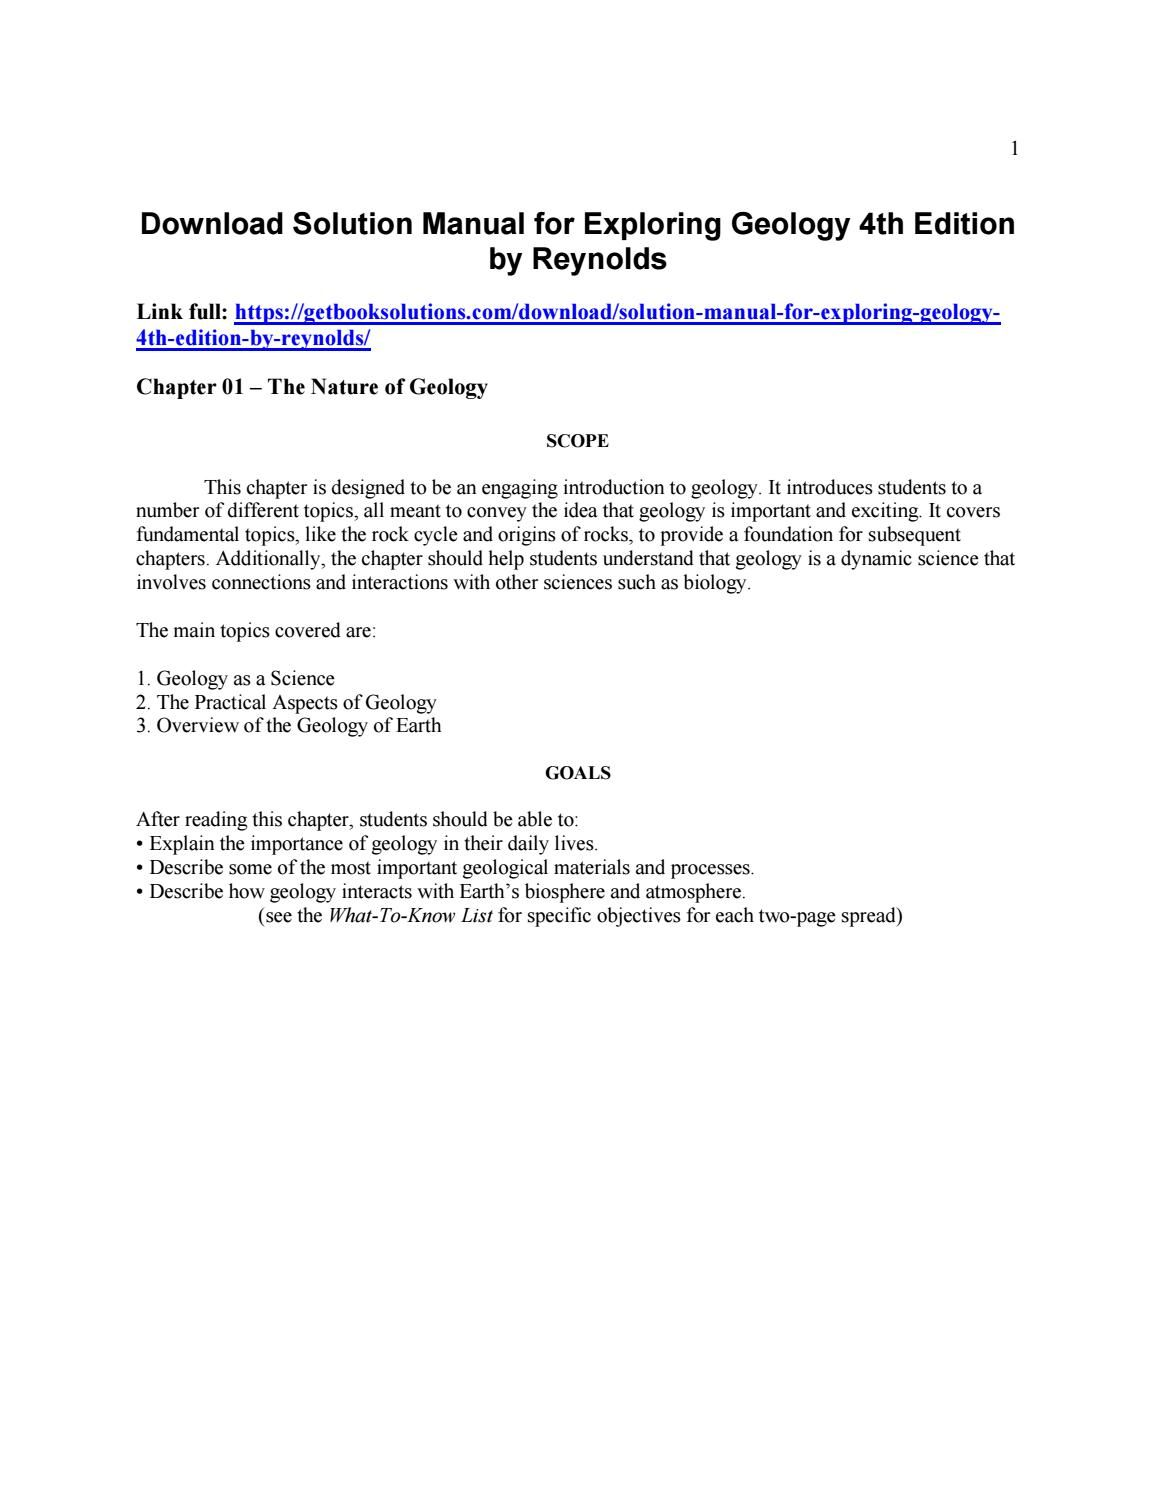 Download solution manual for exploring geology 4th edition by reynolds | solution  manual | Pinterest | Geology